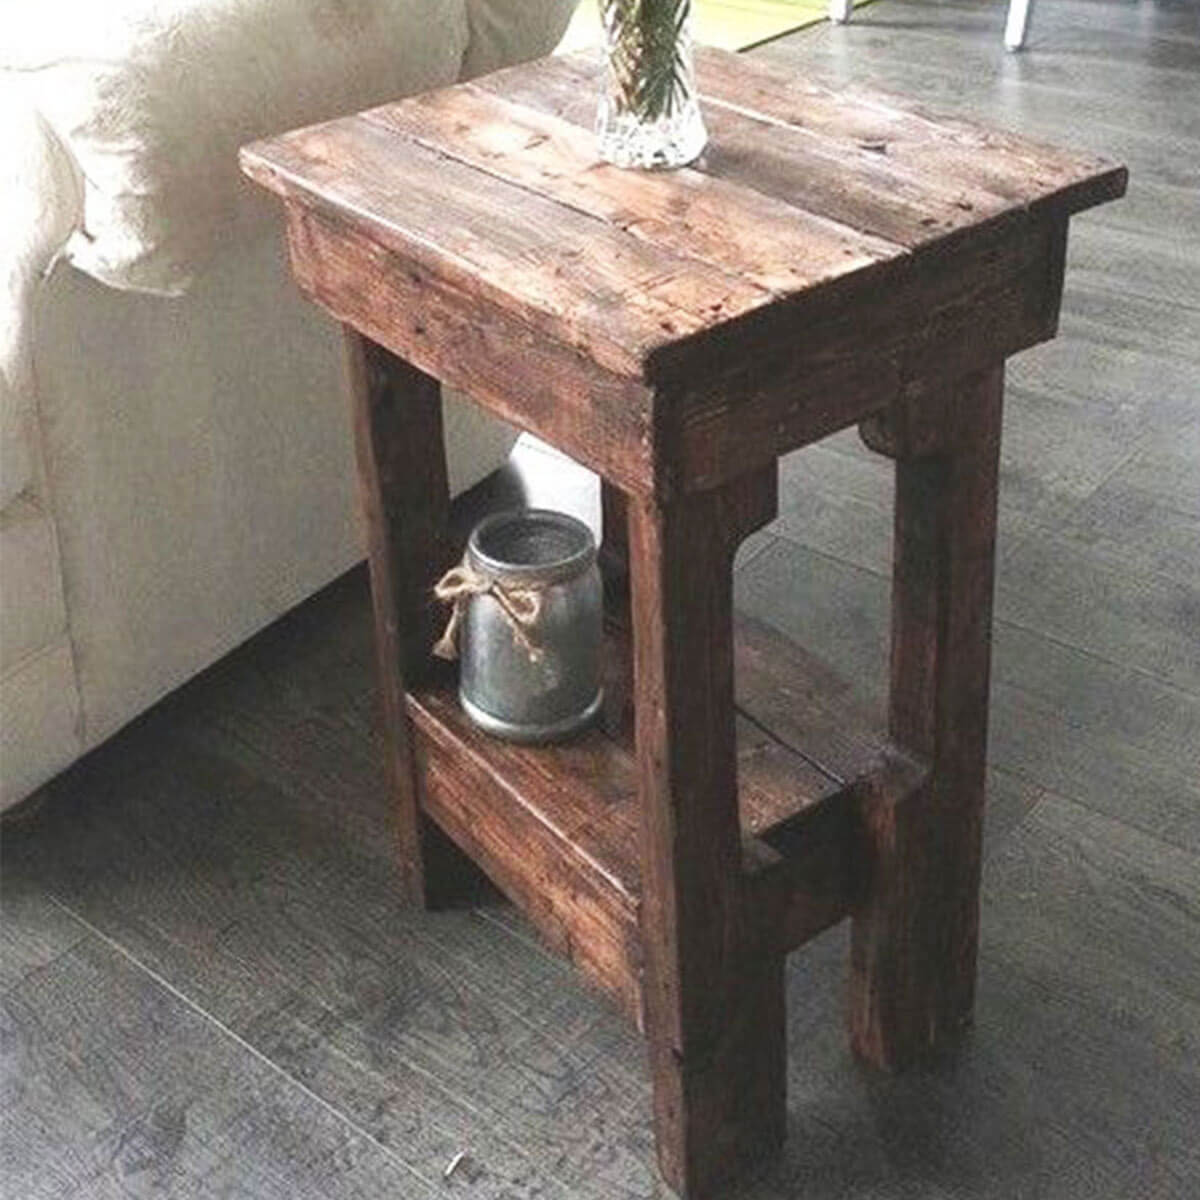 incredible diy end tables simple table ideas the family pallet accent plans affordable commercial teal bedroom accessories trunk style coffee target occasional bathroom basin